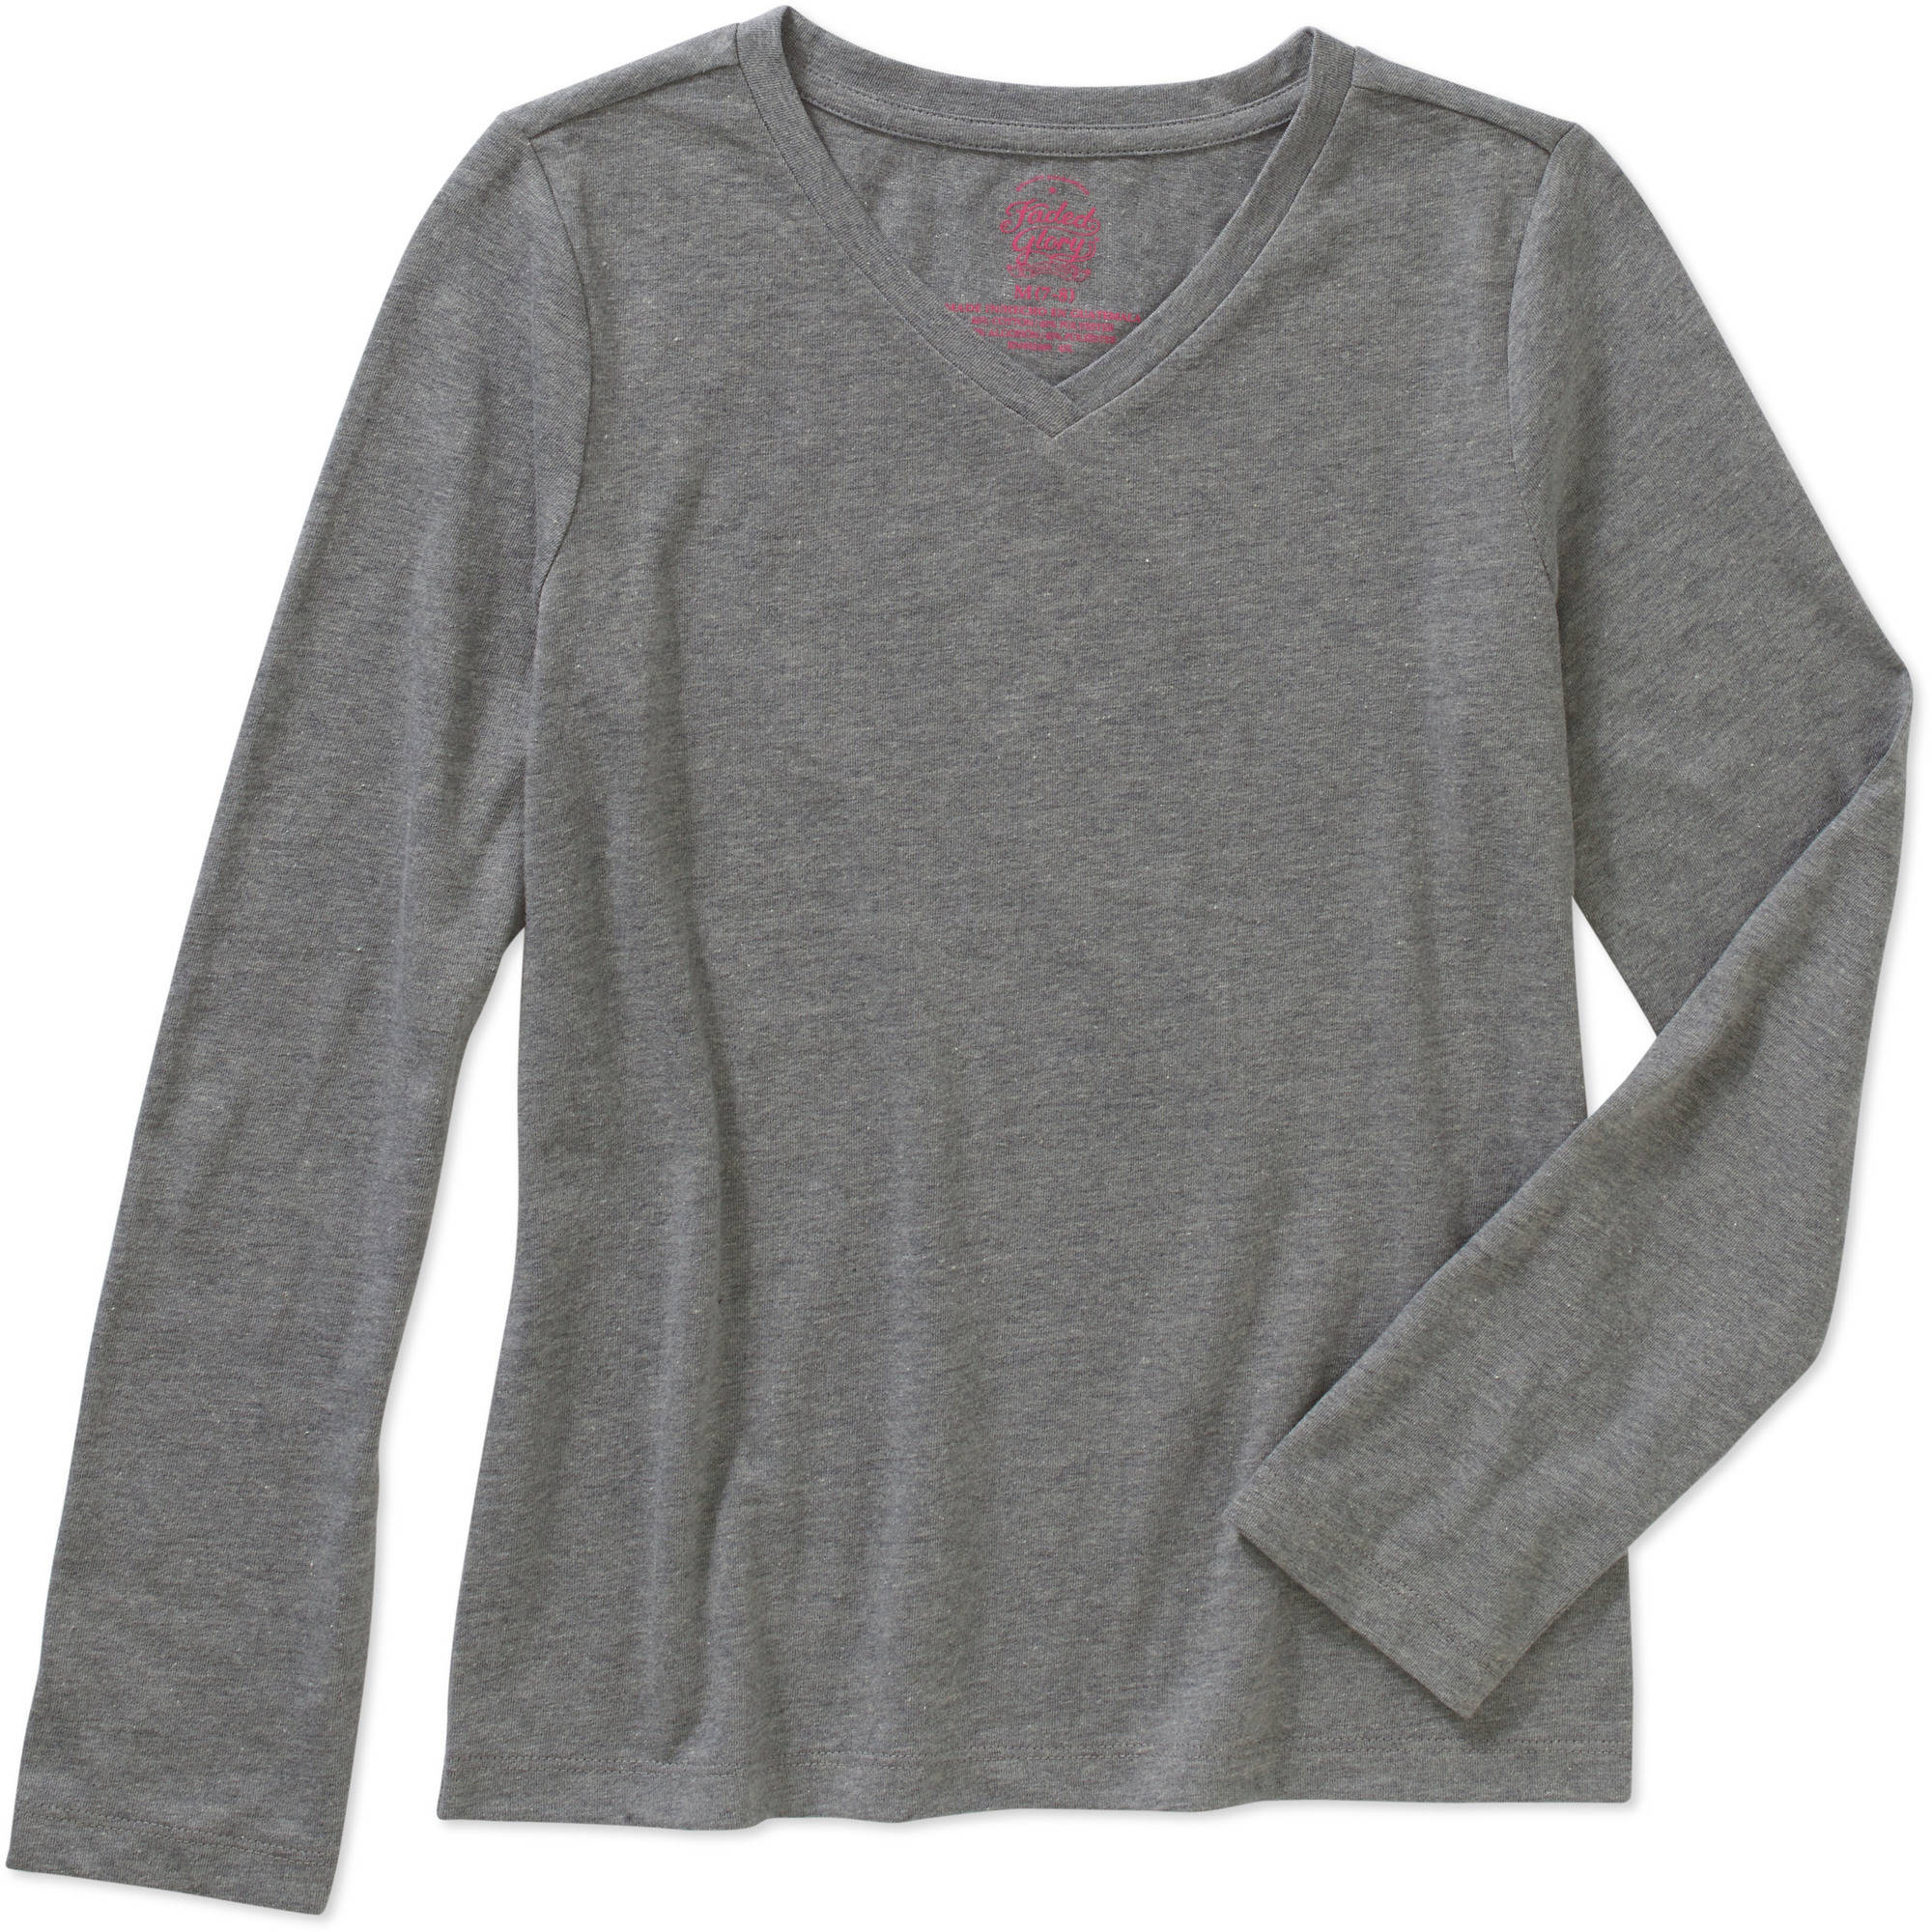 Faded Glory Girls' Long Sleeve V Neck Tee